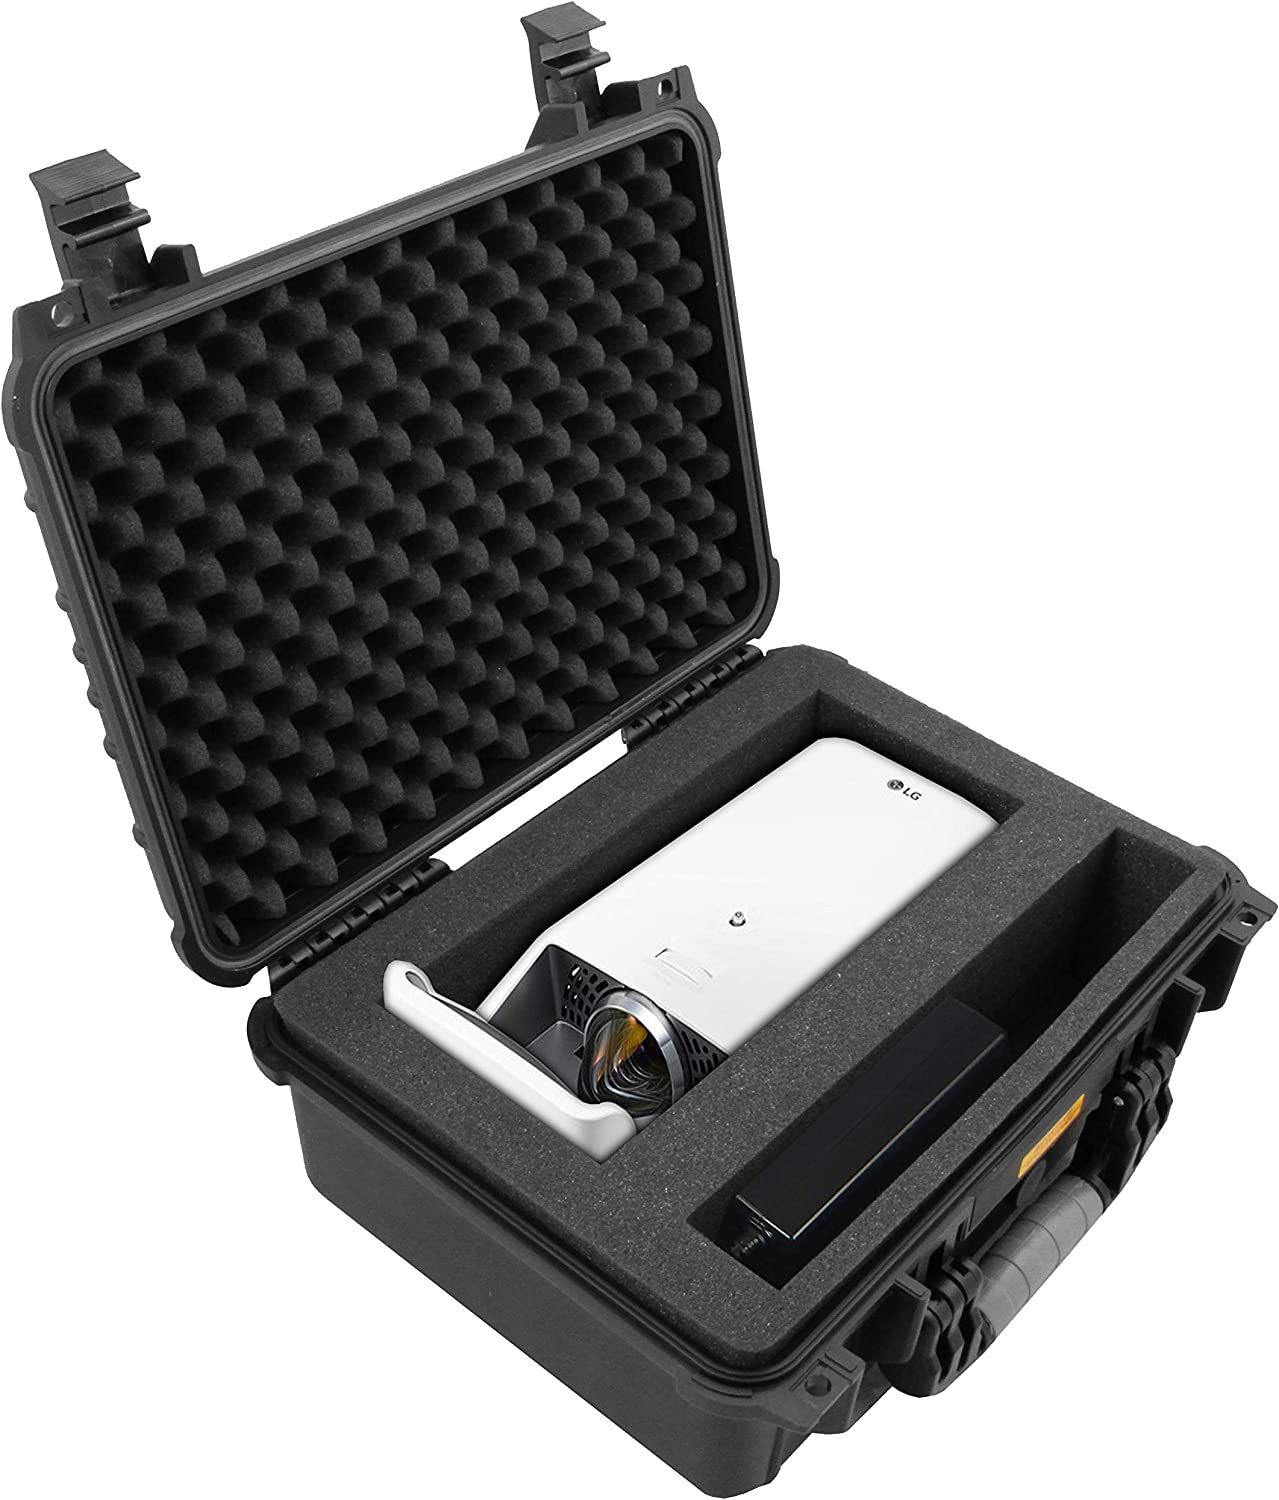 CASEMATIX Projectorbox(2019) Waterproof Short Throw Projector Carry Case Fits LG HF65LA Ultra Short Throw LED Home Theater CineBeam Projector and Accessories - Protective Rugged Travel Design